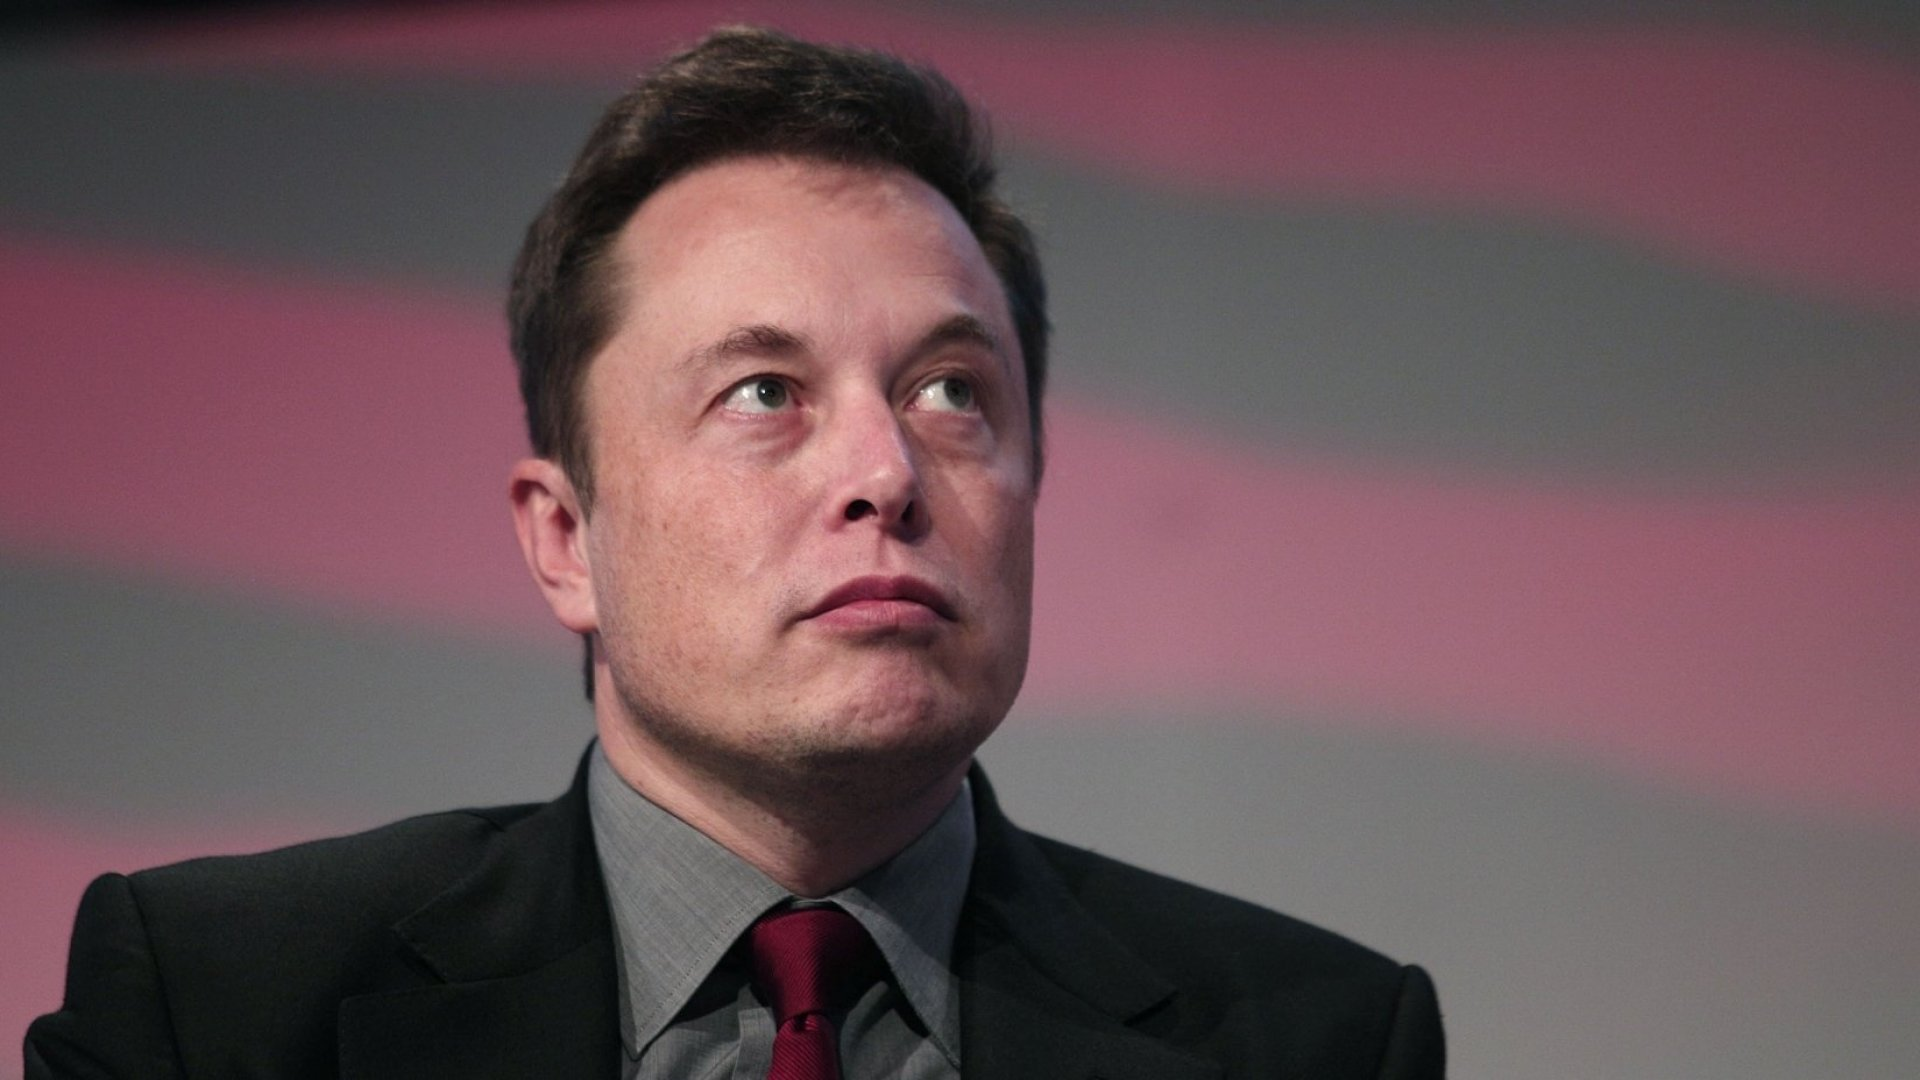 This Email From Elon Musk to Tesla Employees Describes What Great Communication Looks Like